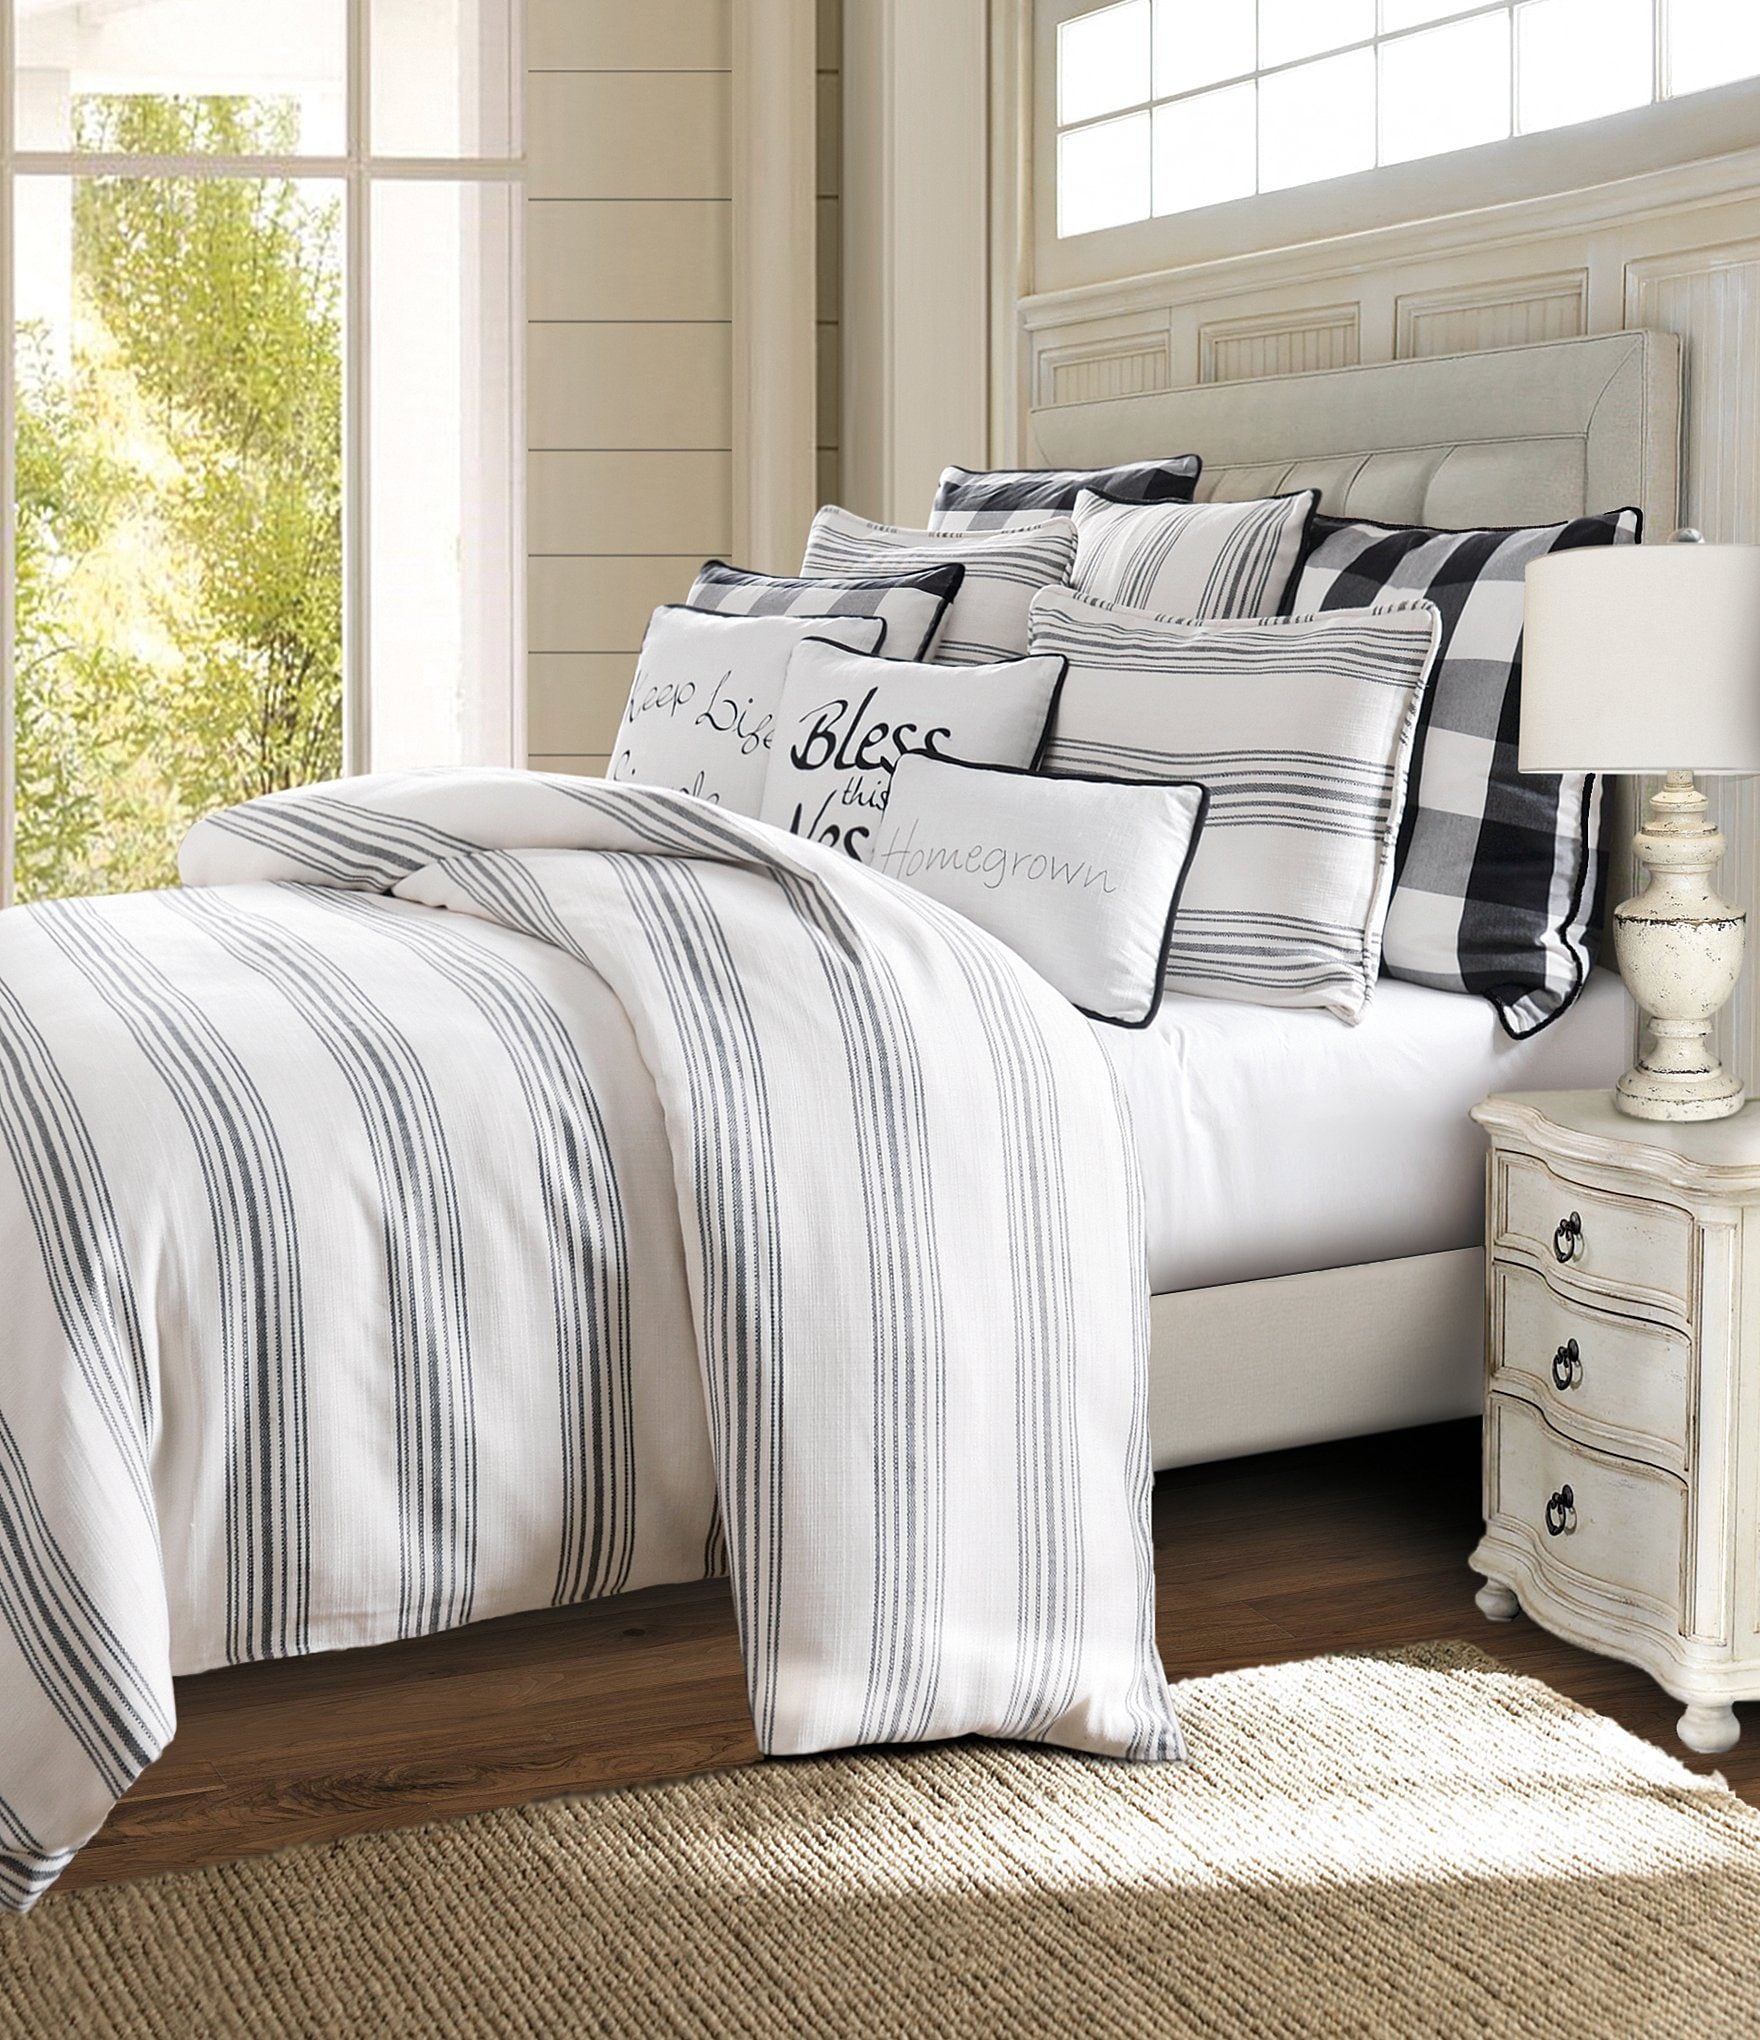 Hiend Accents Blackberry Vintage Striped Comforter Mini